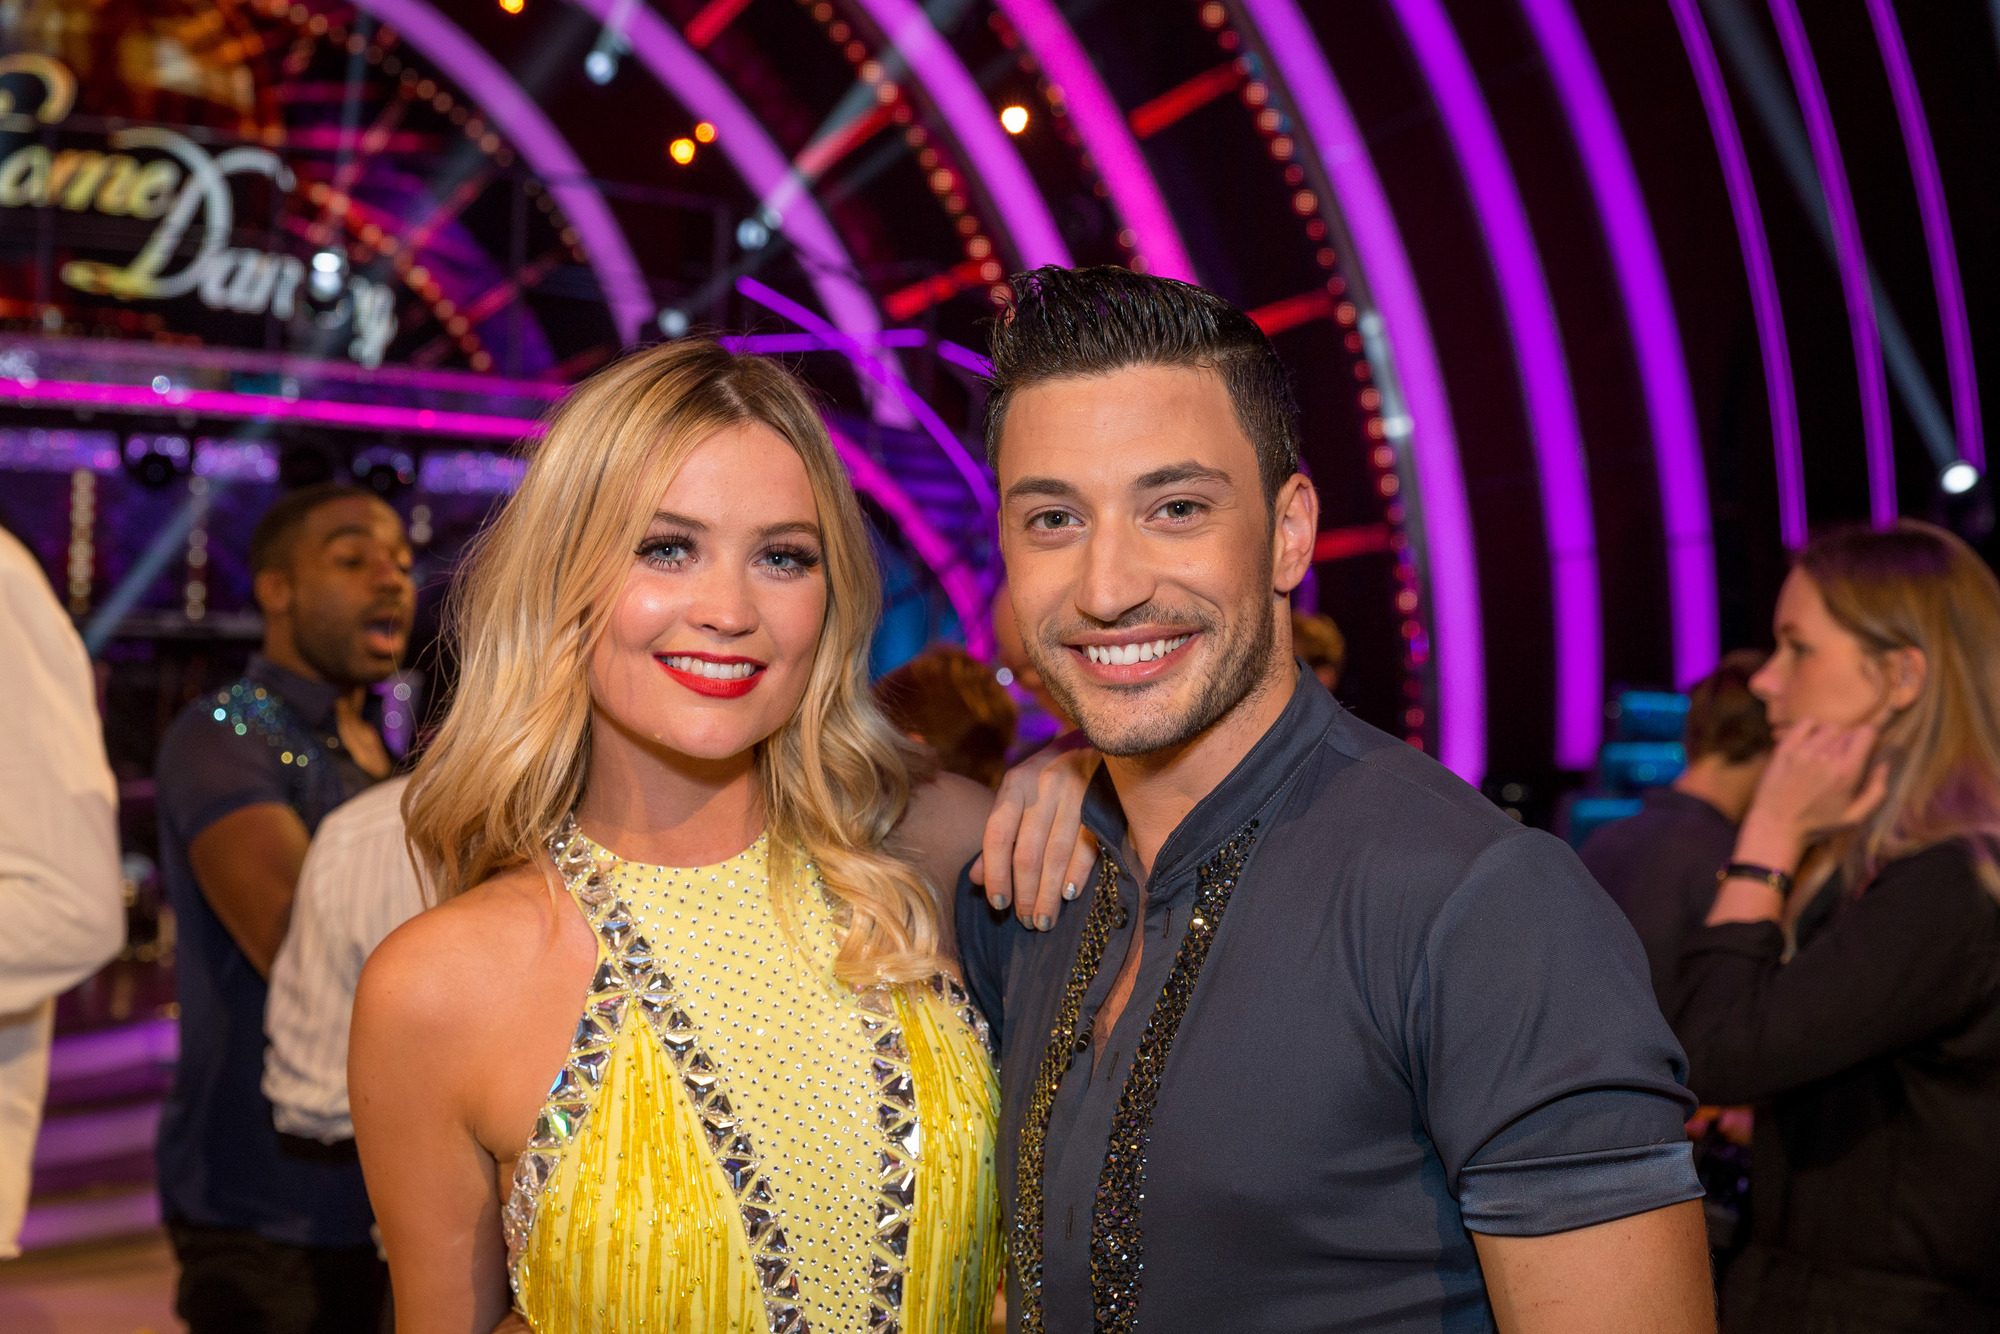 Laura Whitmore pulls out of Saturday's Strictly Come Dancing with ankle injury